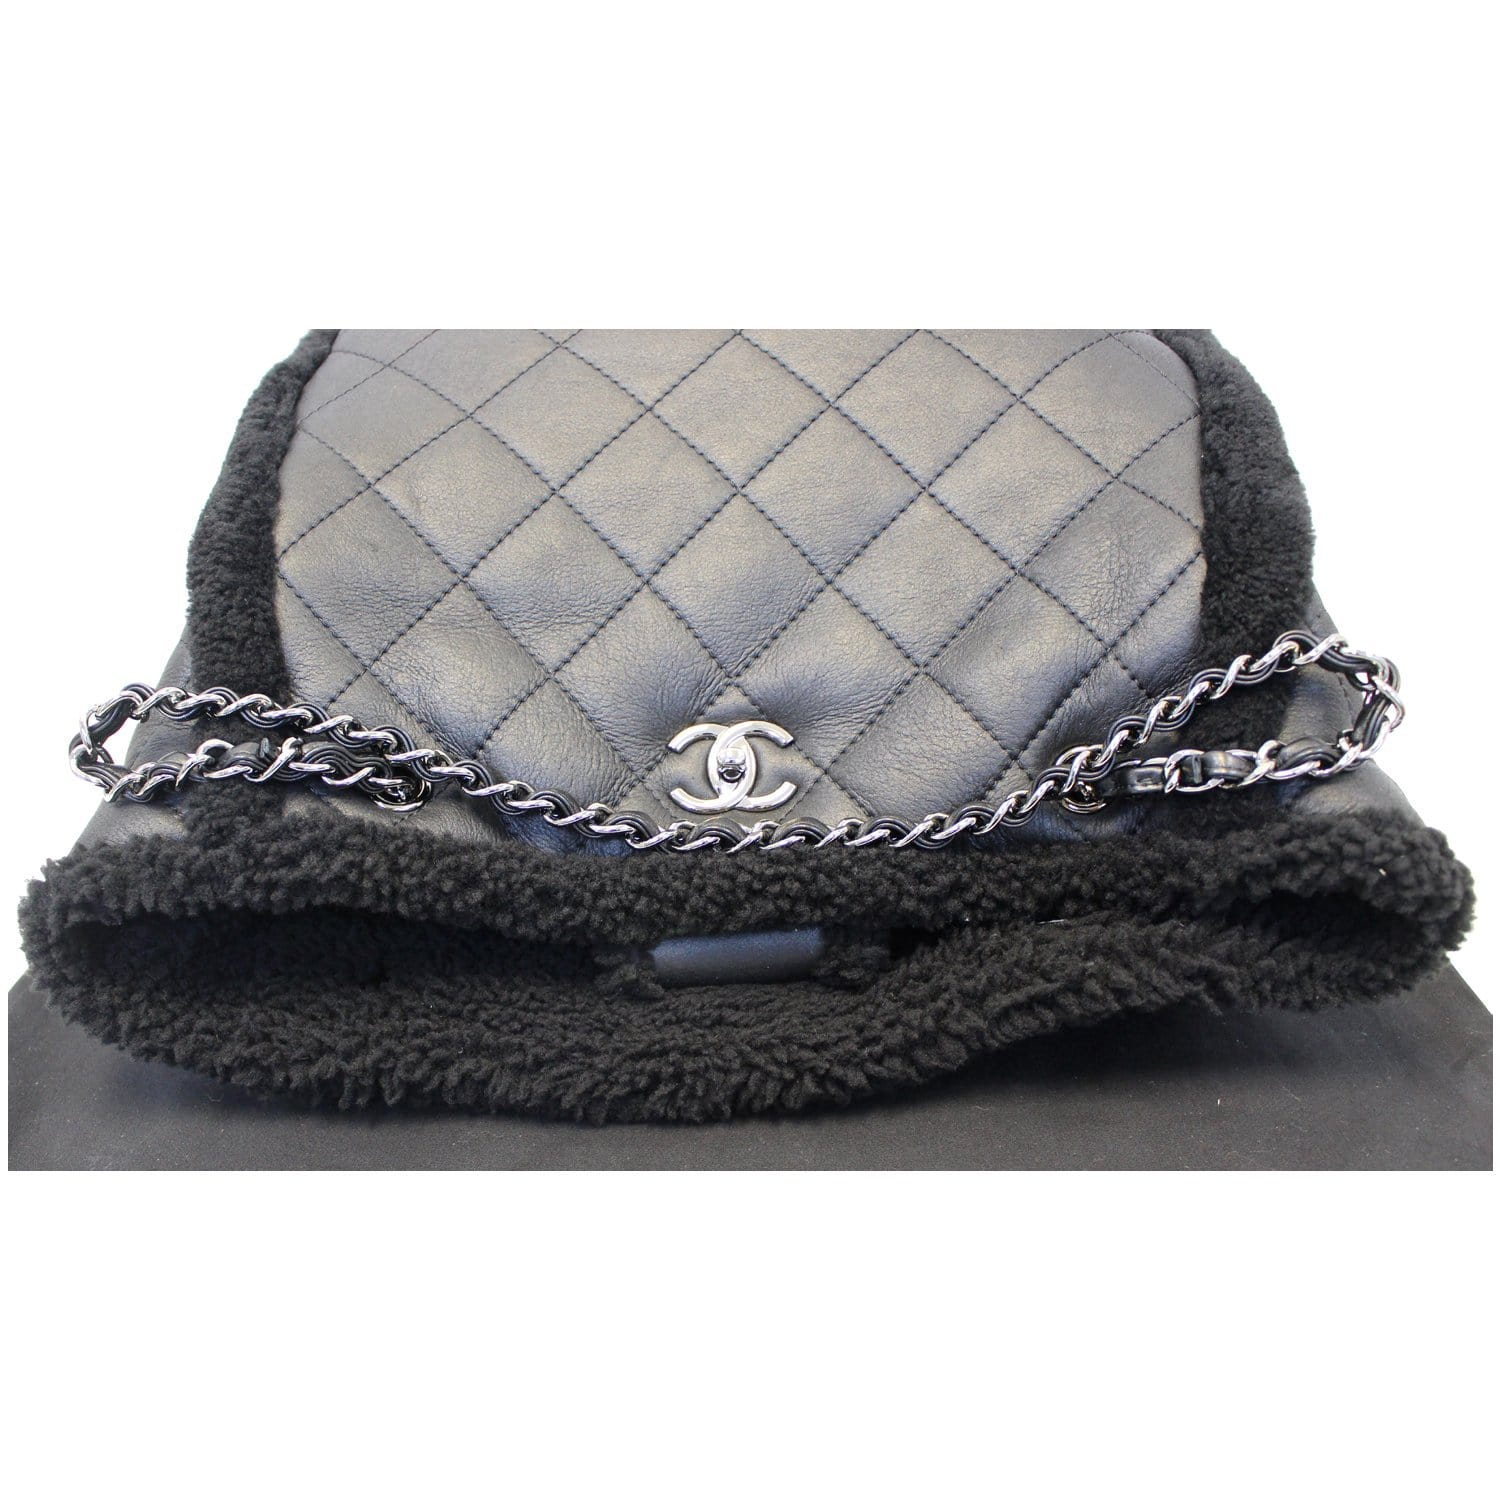 0c48a3c5 CHANEL Cozy CC Shearling and Lambskin Tote Bag Black-US